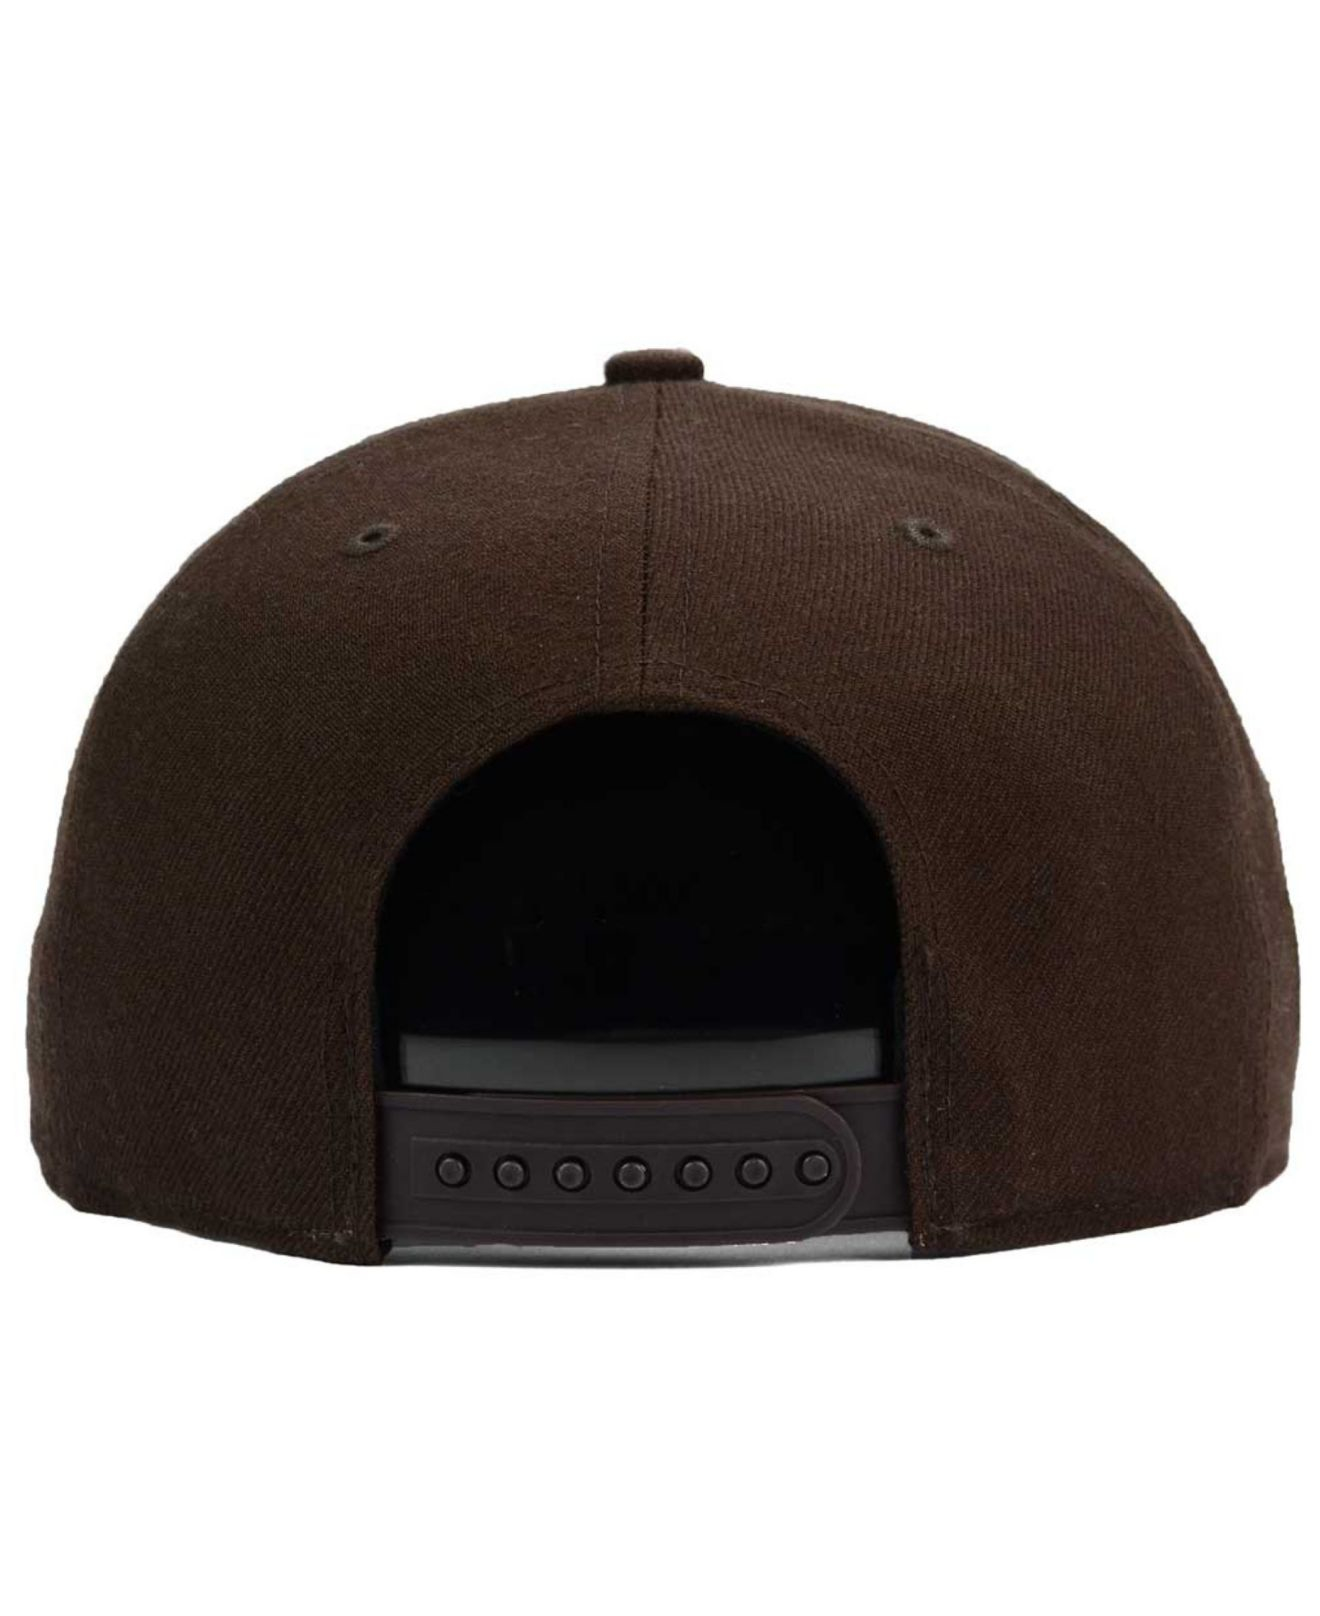 bcebbbd3bdf ... new arrivals lyst 47 brand cleveland cavaliers sure shot snapback cap  in brown dc8bc 441d5